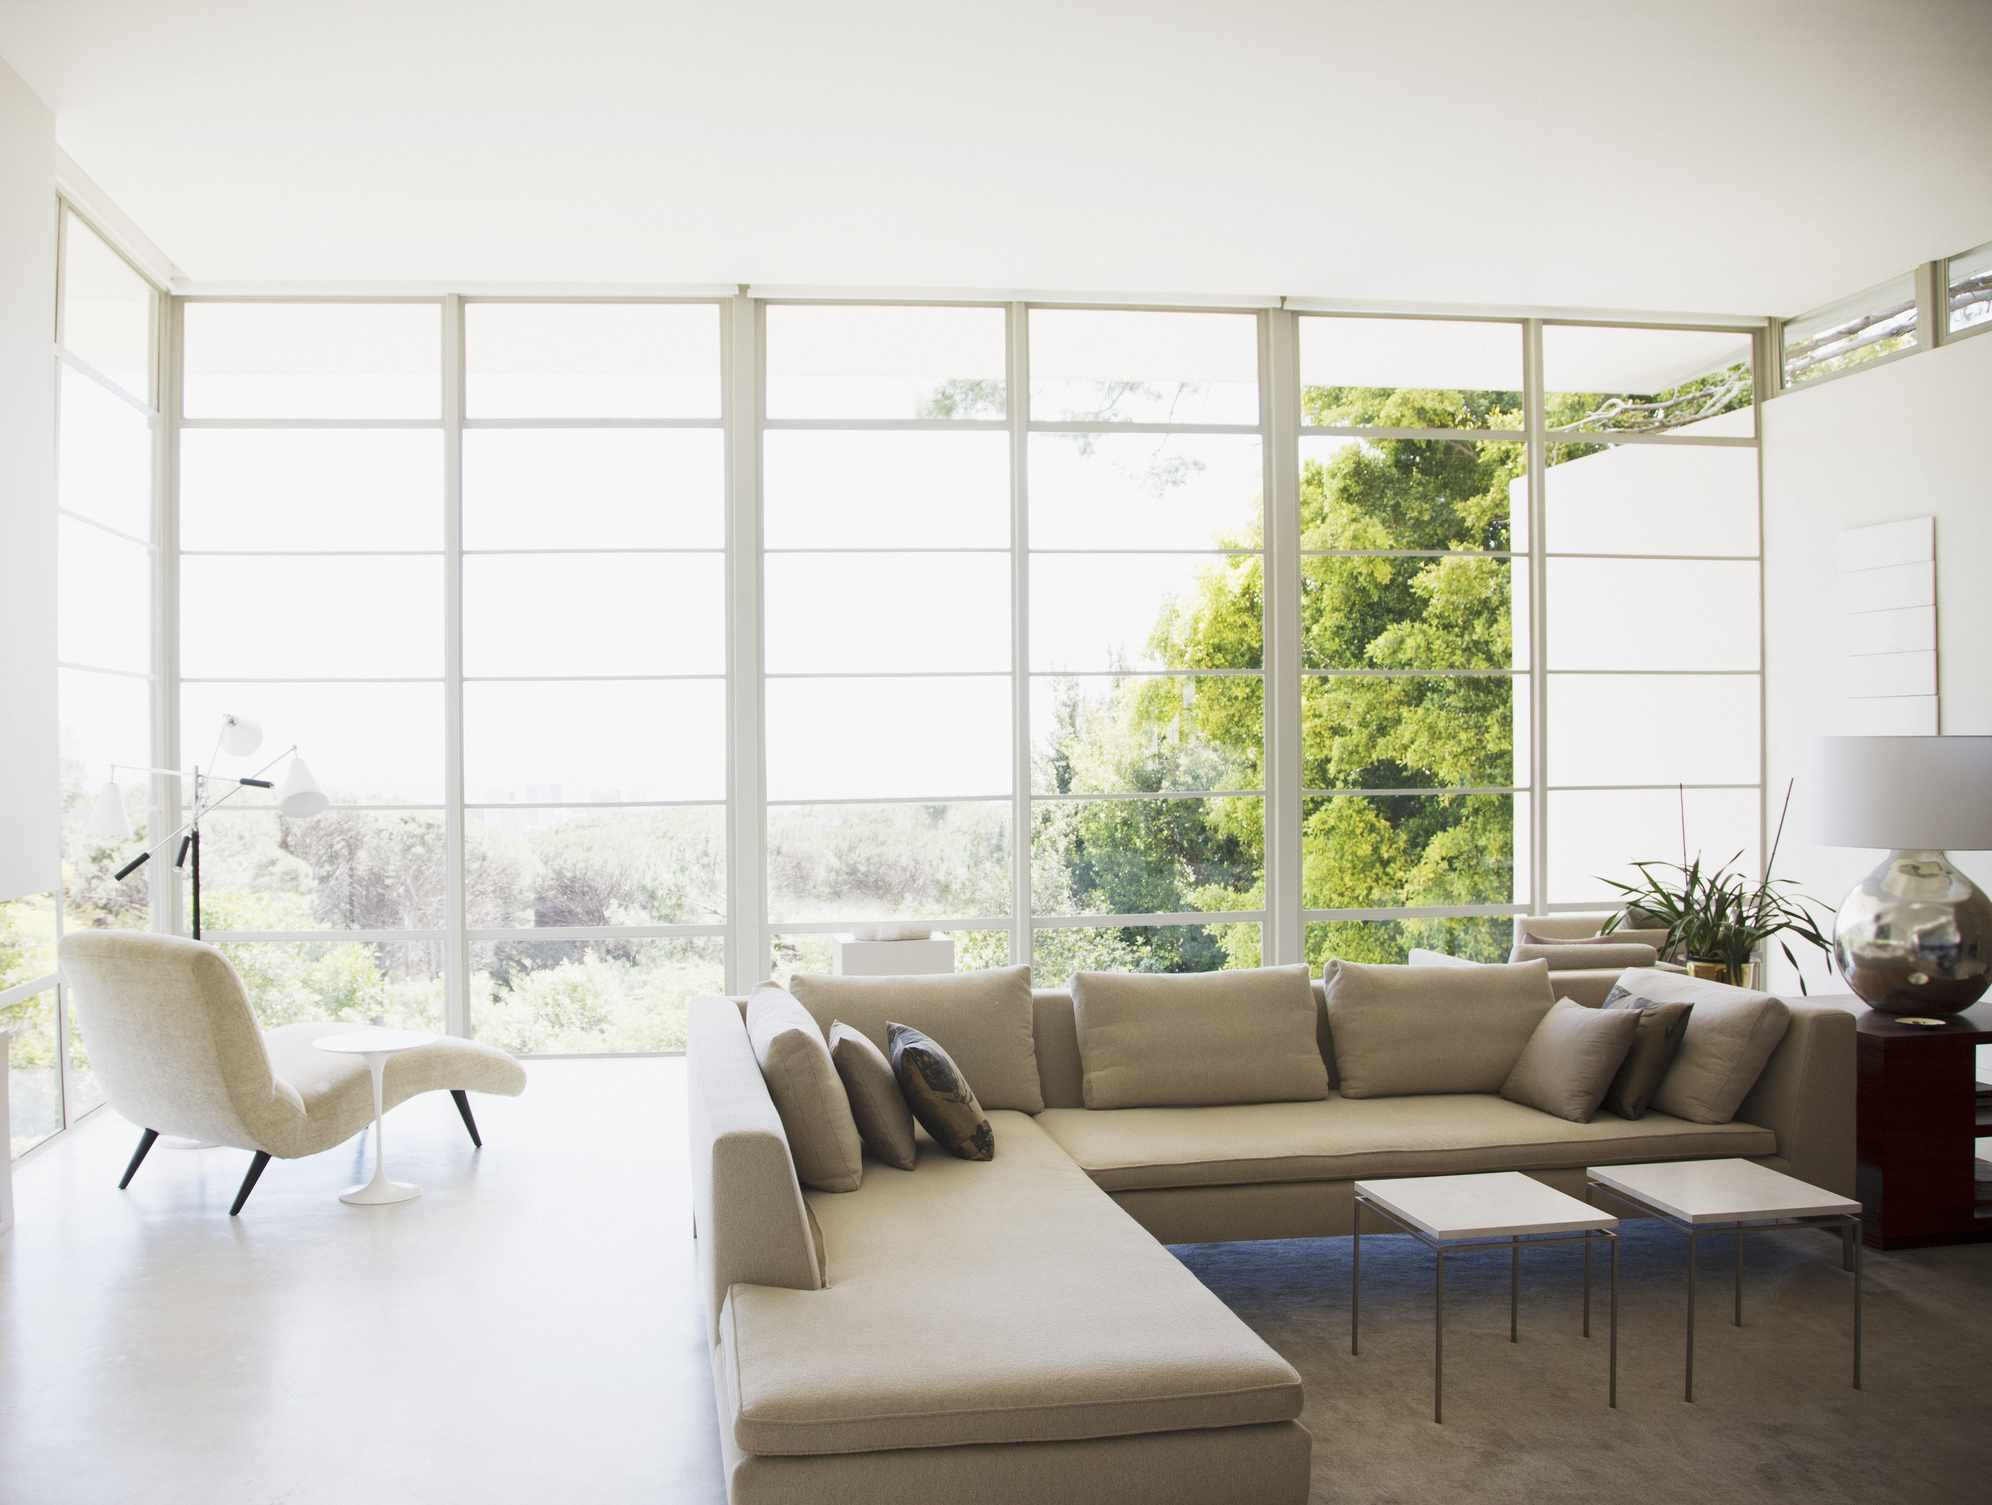 Living room with large windows facing greenery